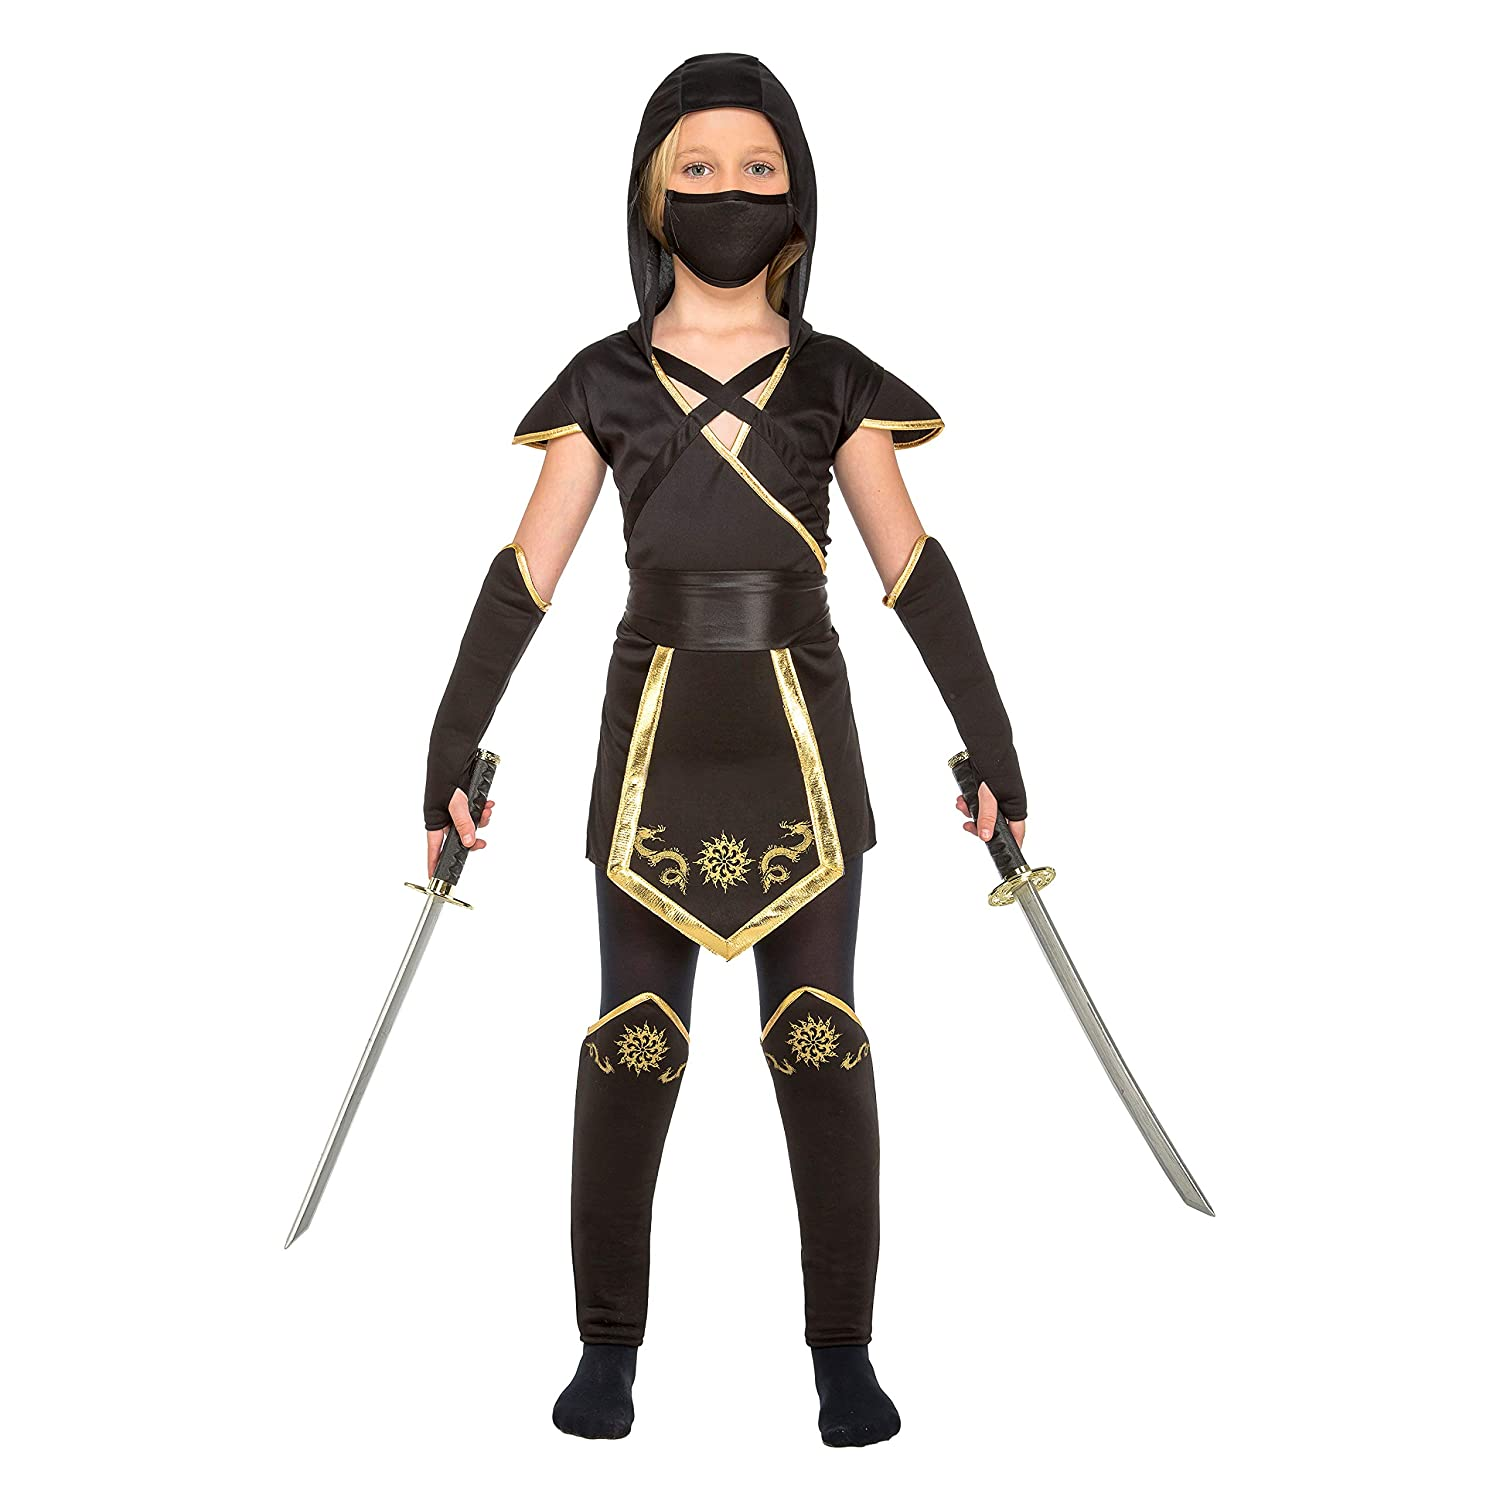 My Other Me Me-204893 Disfraz de ninja para niña, color negro, 10-12 años (Viving Costumes 204893)